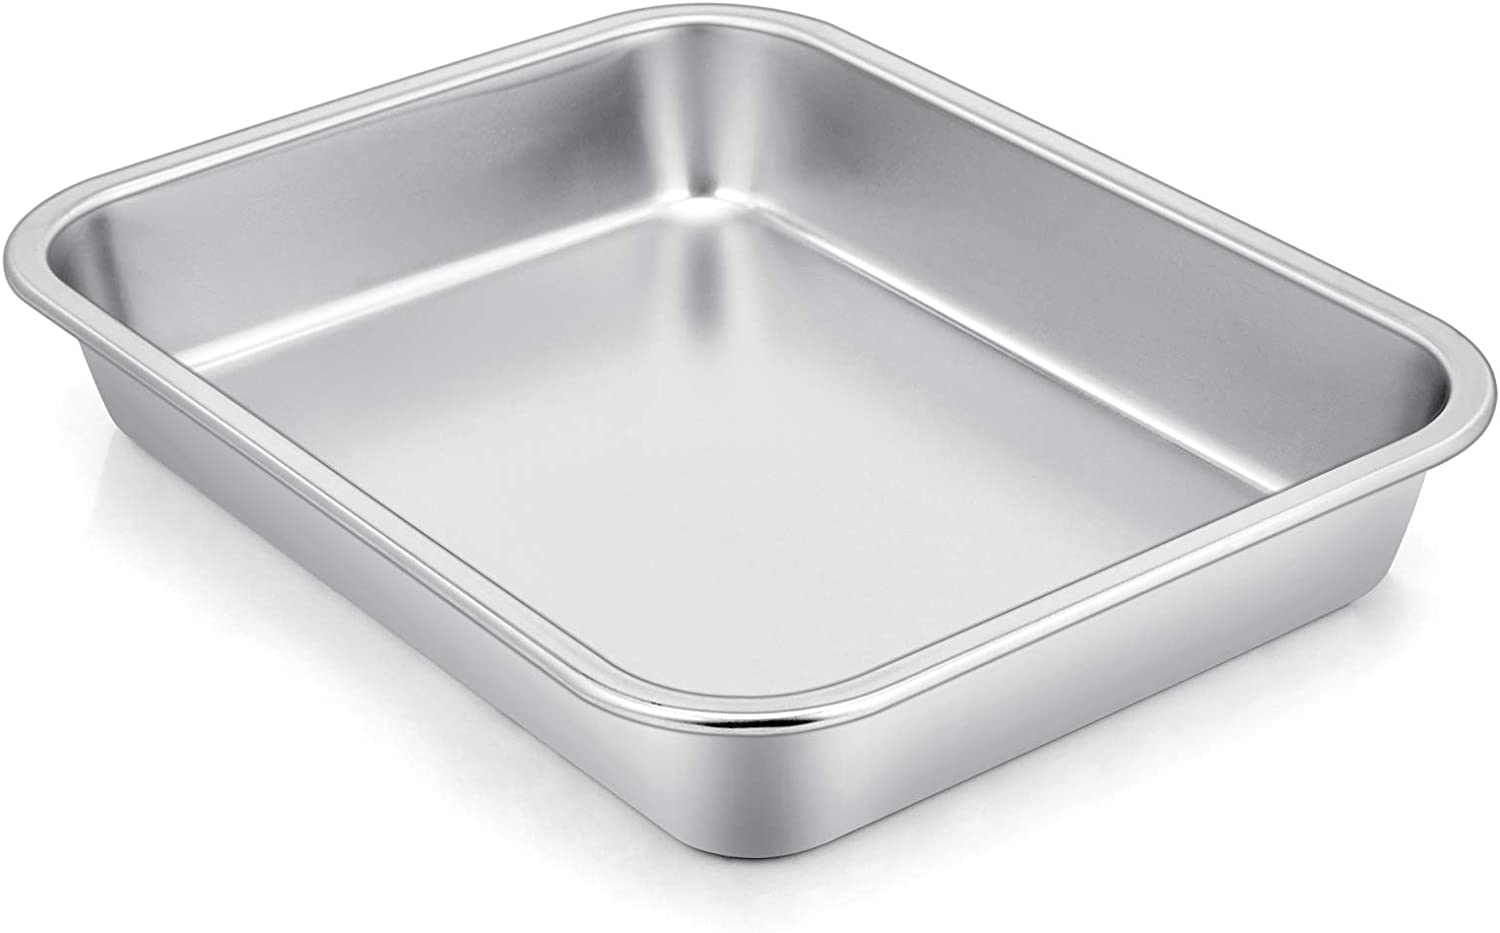 "P&P CHEF Rectangular Lasagna Pan, High-Sided Cookie Sheet Pan Stainless Steel, Size 10.6""x 8.25"" x 1.7"" Inches, Perfect for Most Toaster Oven & One Person Use, Non Toxic & Heavy Duty & Easy Clean"